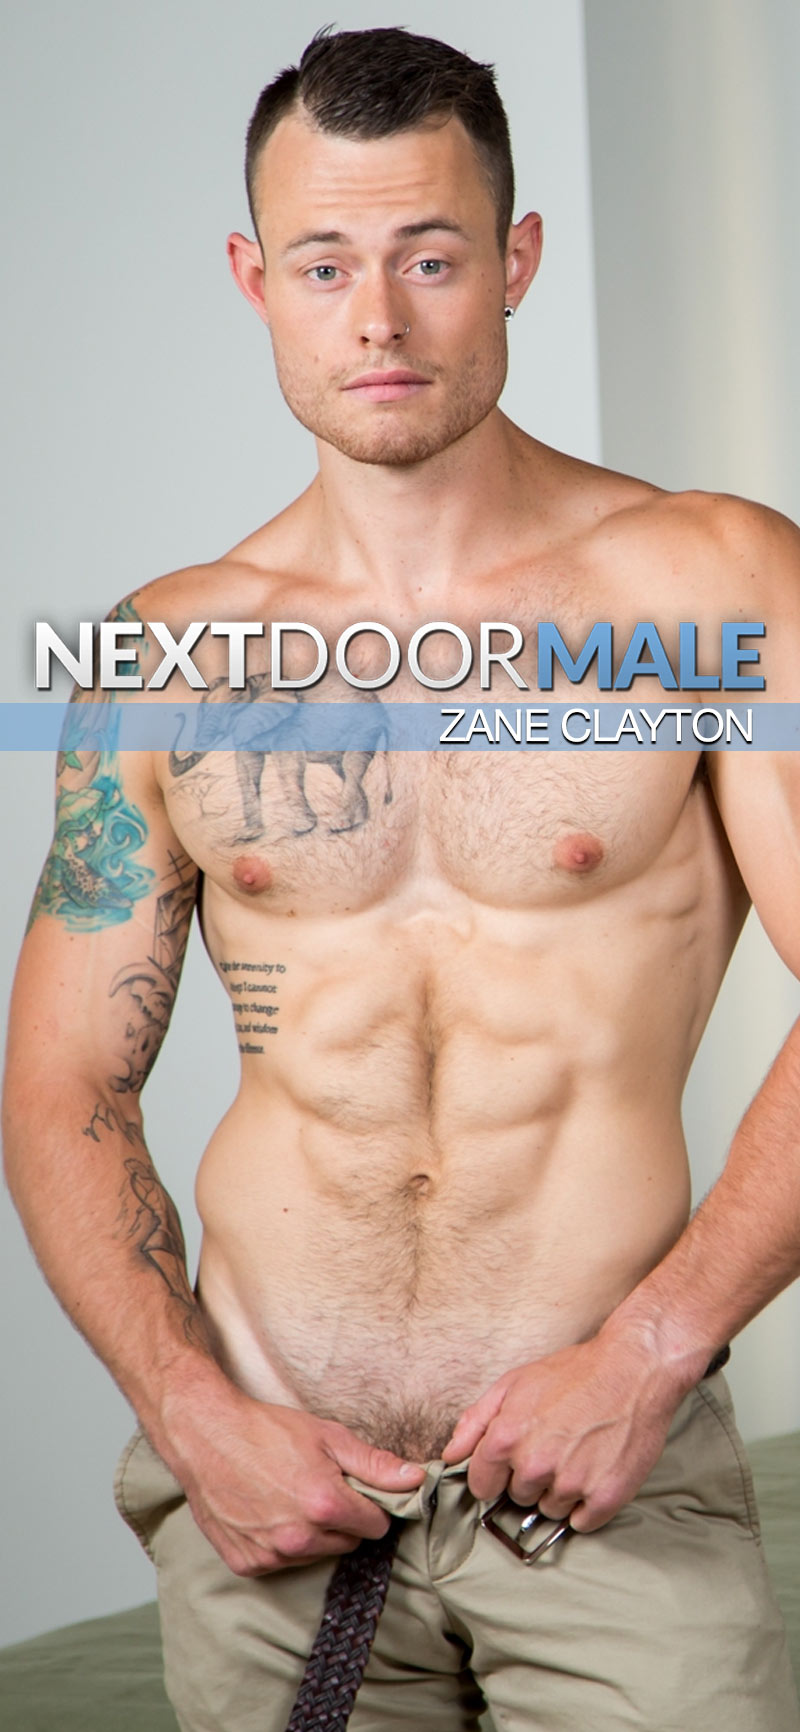 Zane Clayton at Next Door Male